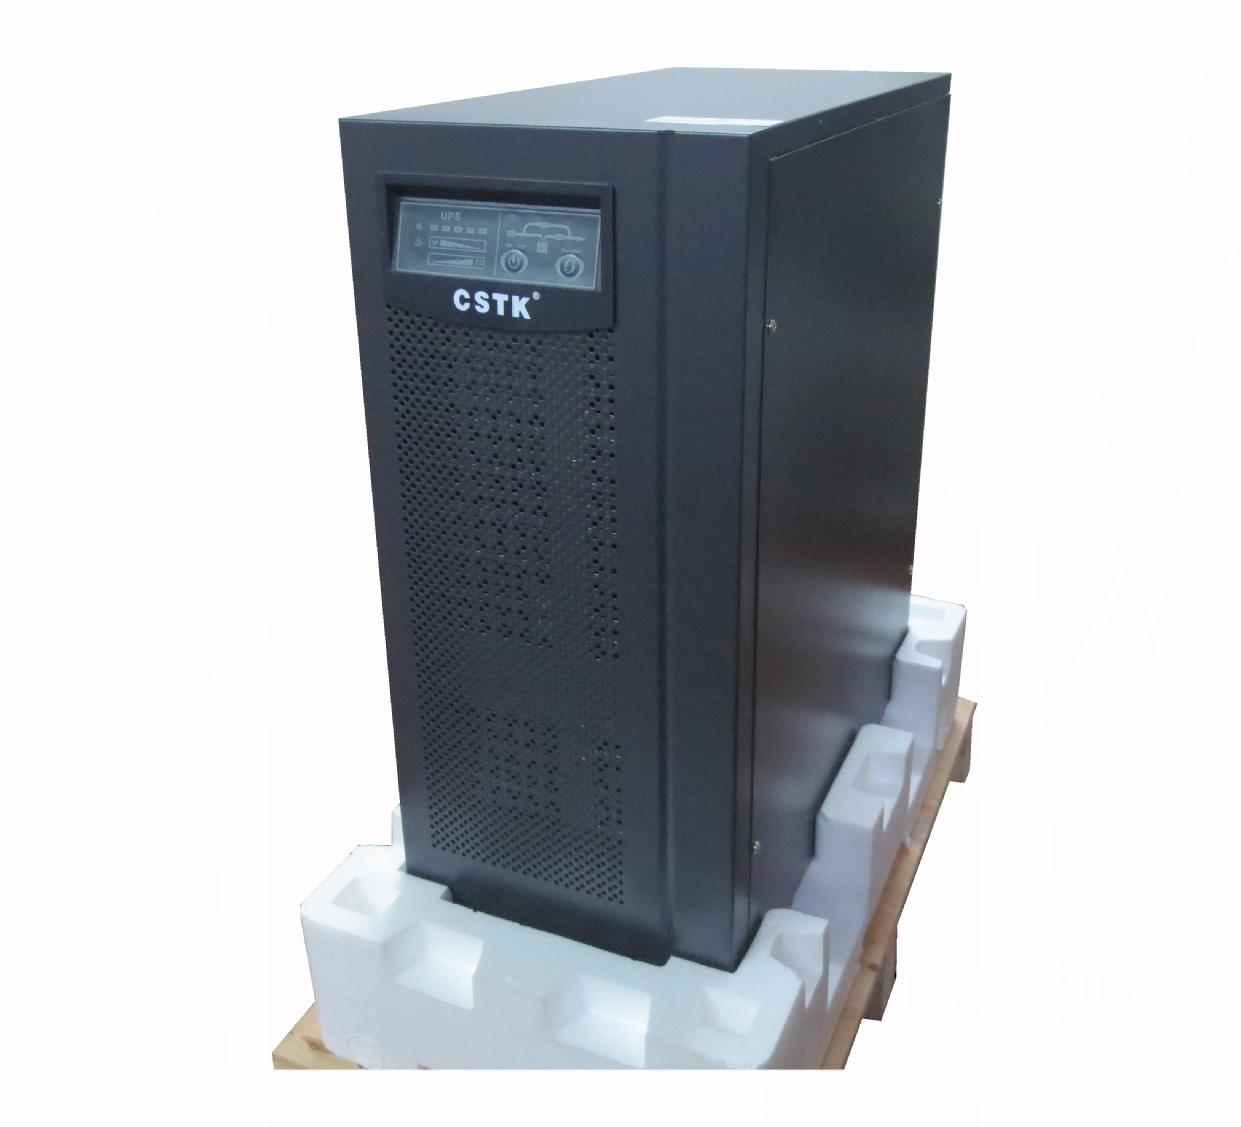 CSTK3C20KSUPS host 1 12V65AH batteries, 16 A16 boxes, 1 20KVA half an hour